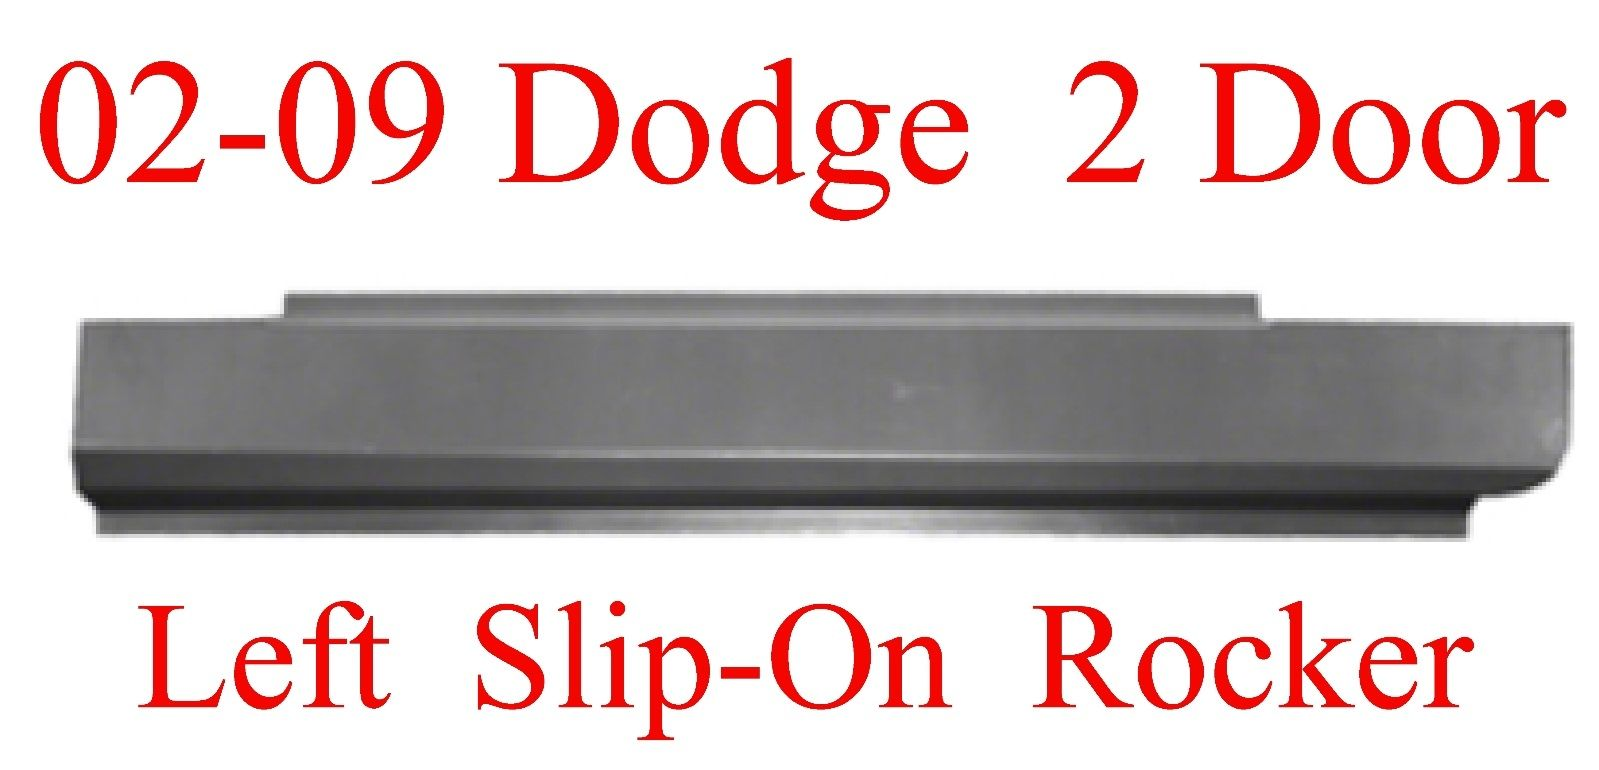 02-09 Dodge Left Slip-On Rocker Panel 2 Door